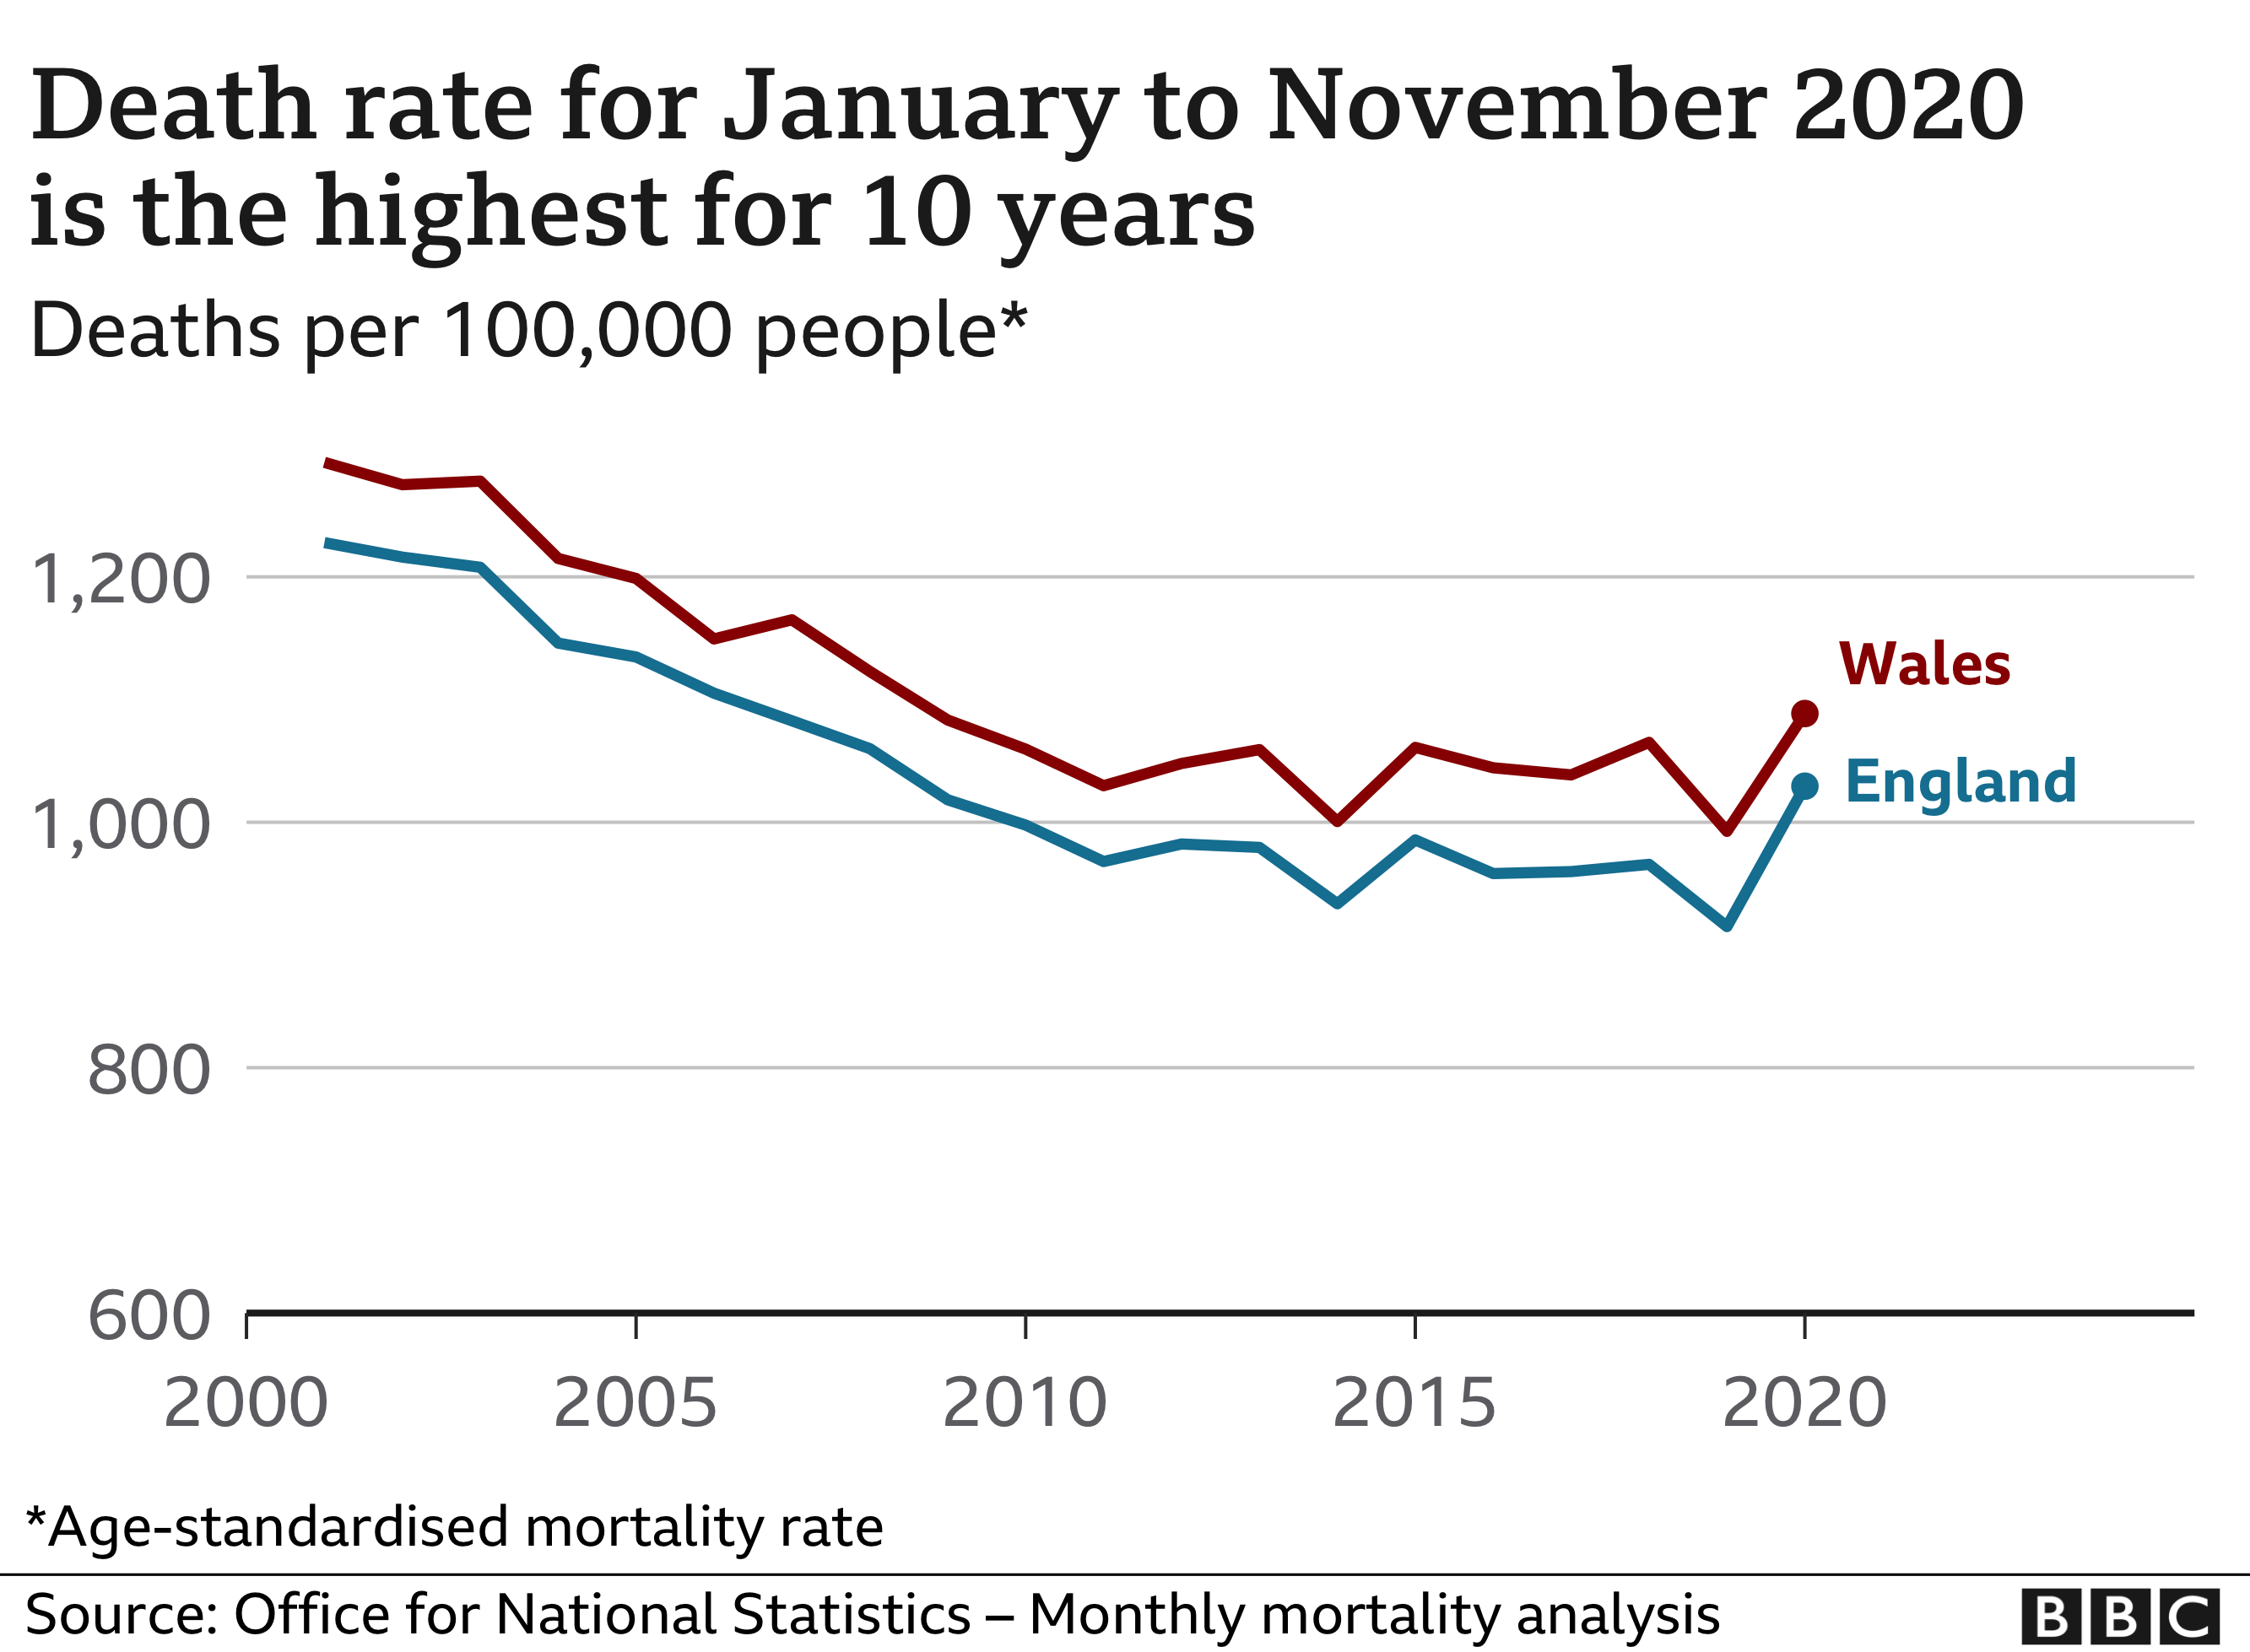 Death rate for January to November 2020 is highest for 10 years